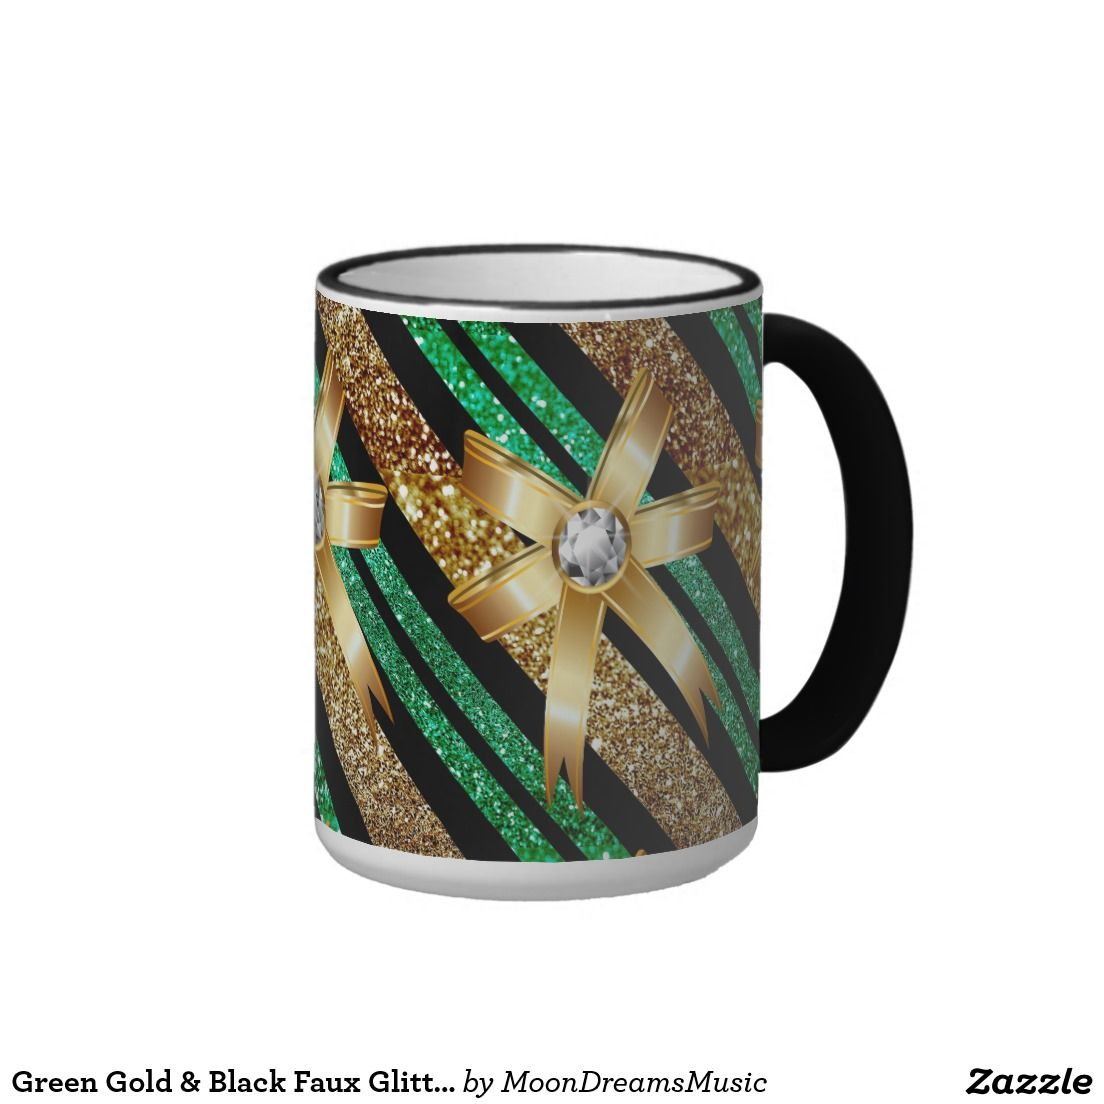 #GreenGoldAndBlack #FauxGlitter #GoldDiamondBows #BlackRingerMug by #MoonDreamsMusic